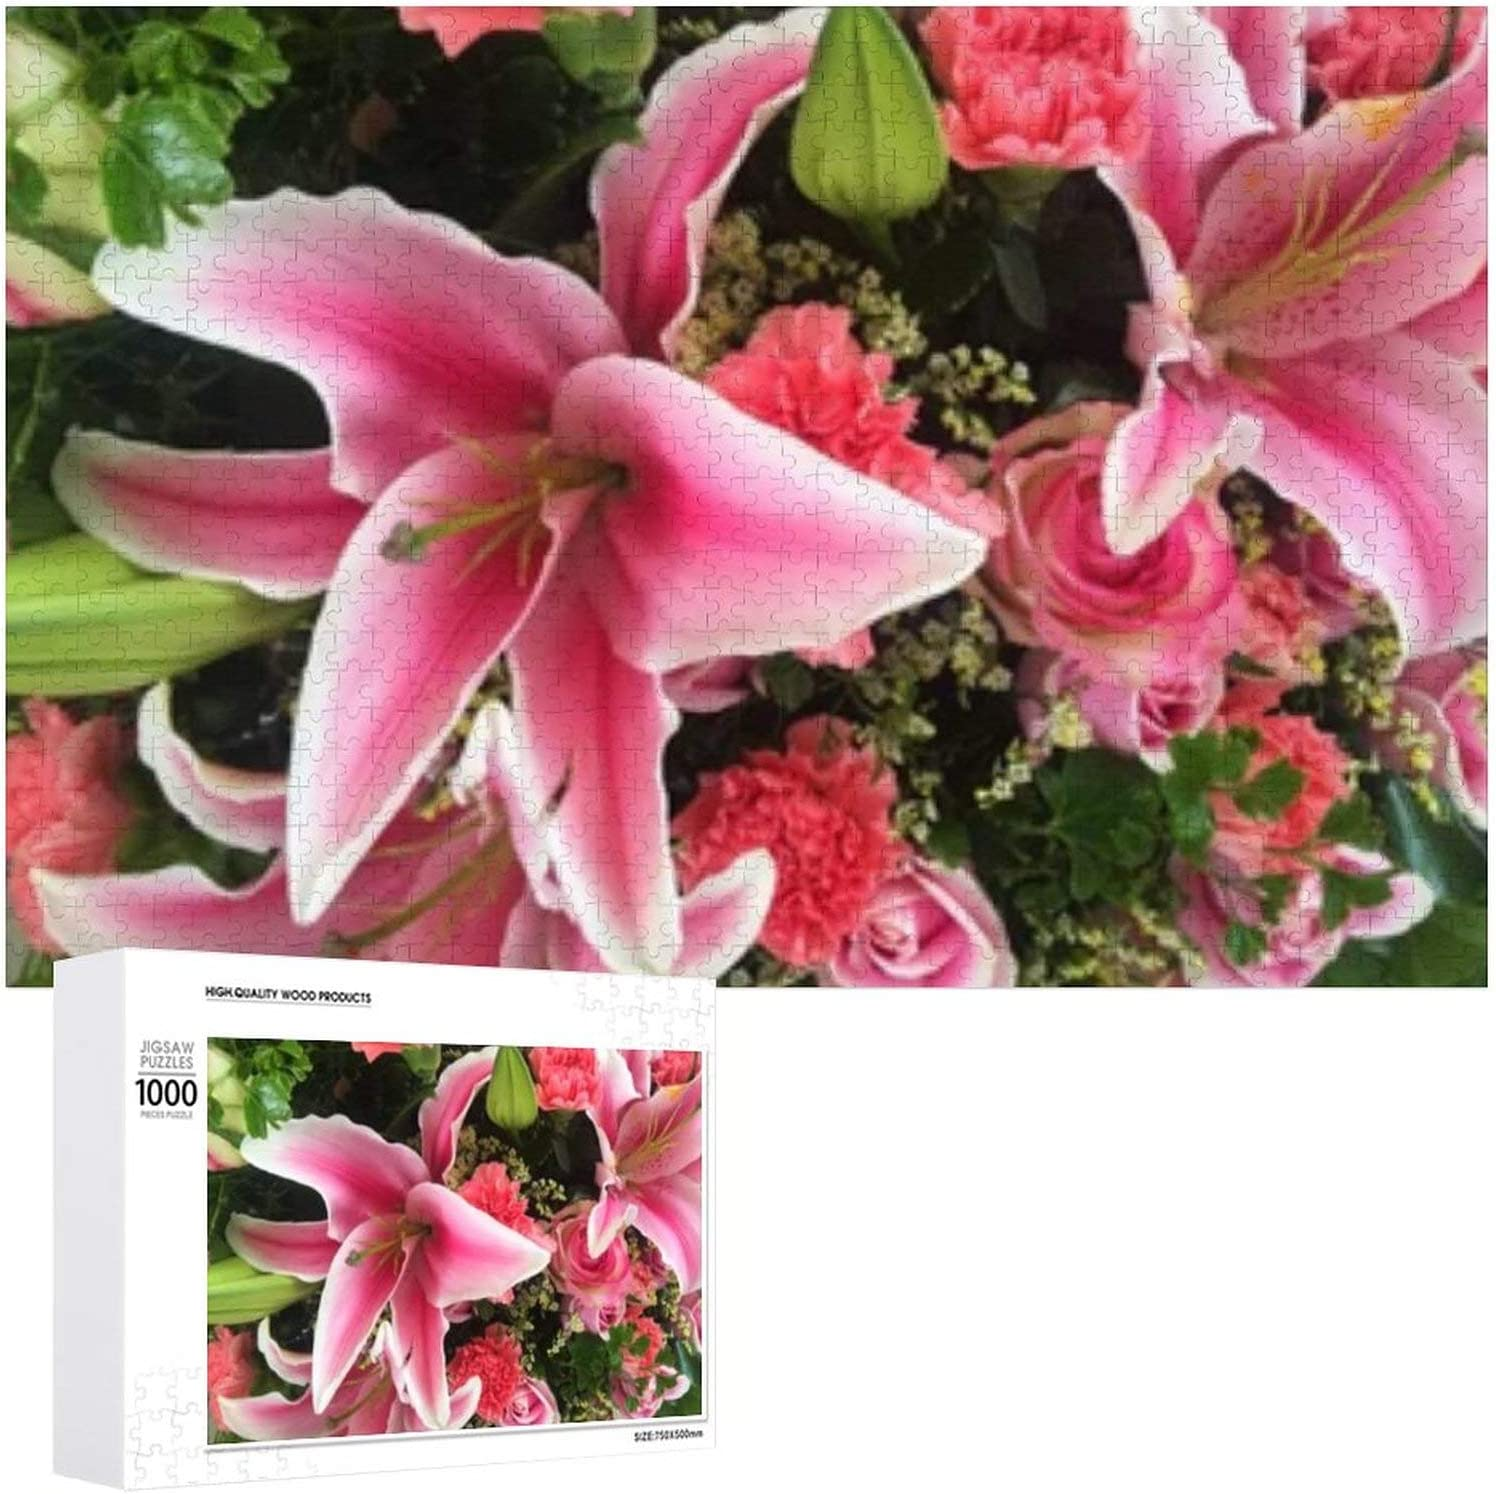 Close Pink Lily Flowers 67% OFF of fixed price Around - 1000 Jigsaw Puzzles Rare for Adults